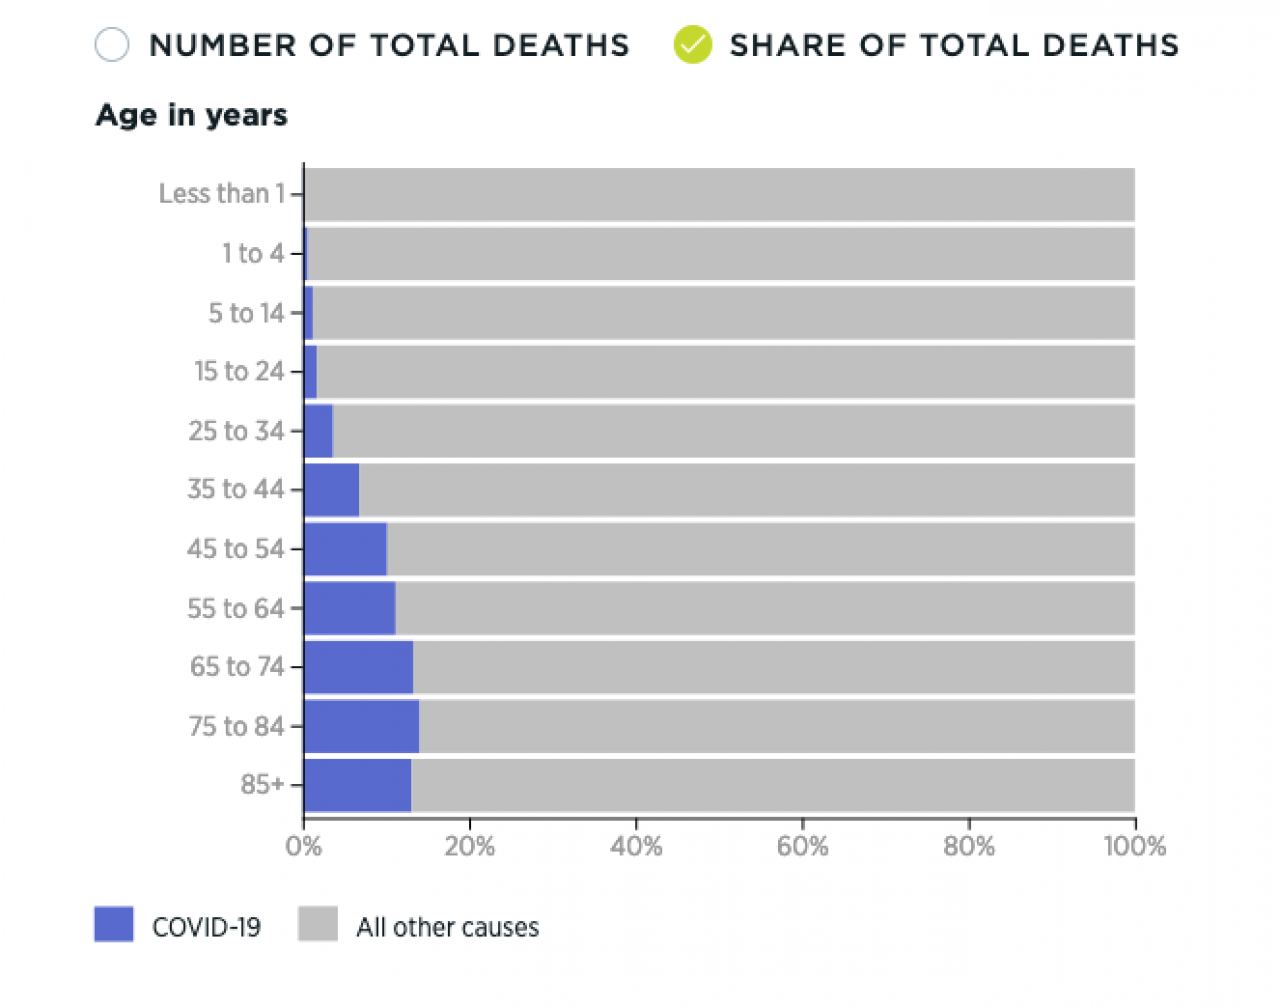 Share of COVID-19 deaths compared to total deaths charts